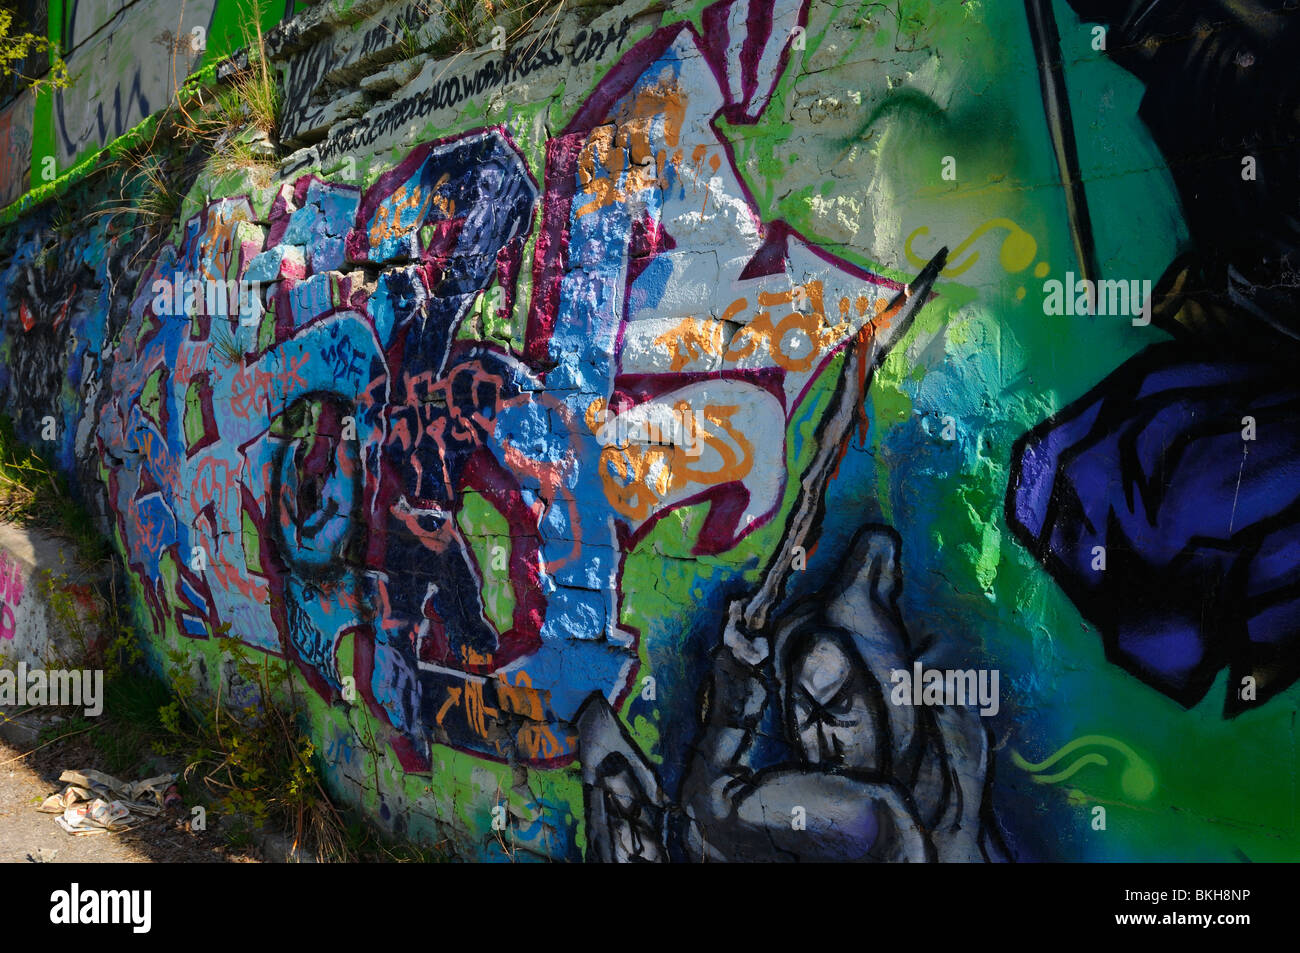 Bulging cracked wall full of tags and graffiti art at Keele subway station Toronto - Stock Image